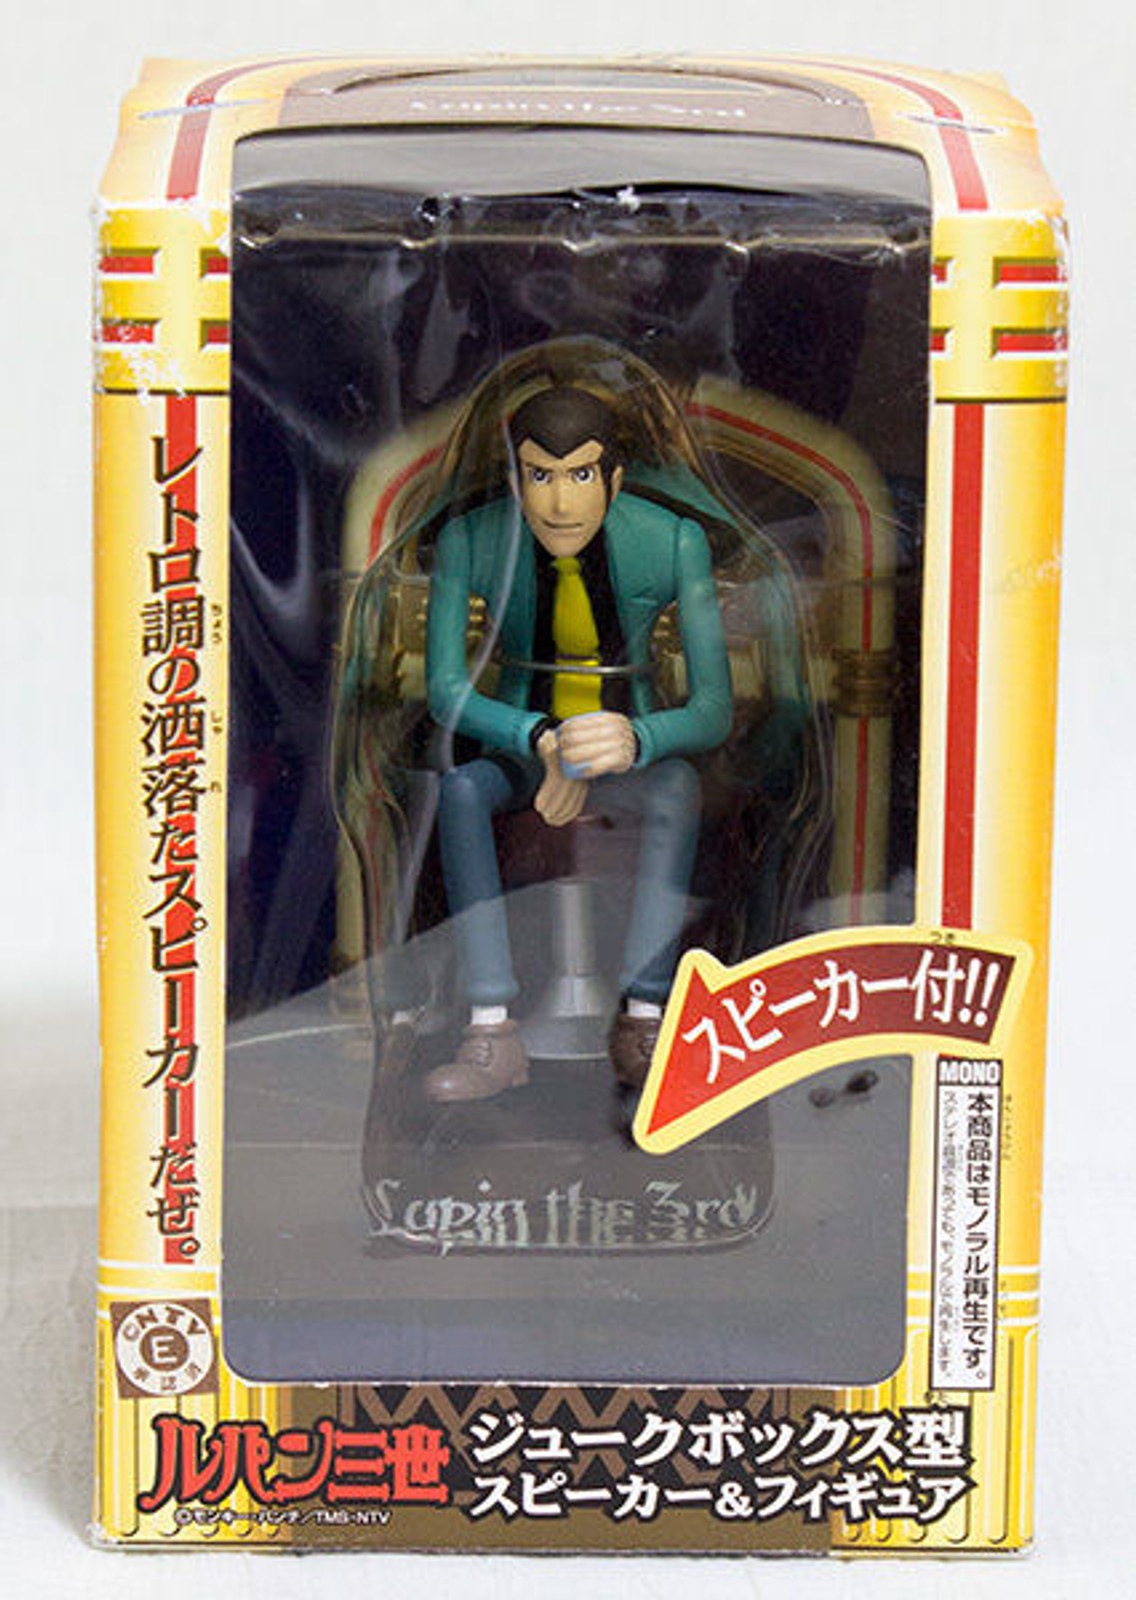 Lupin the Third (3rd) Lupin Jukebox Type Speaker & Figure Banpresto JAPAN ANIME MANGA